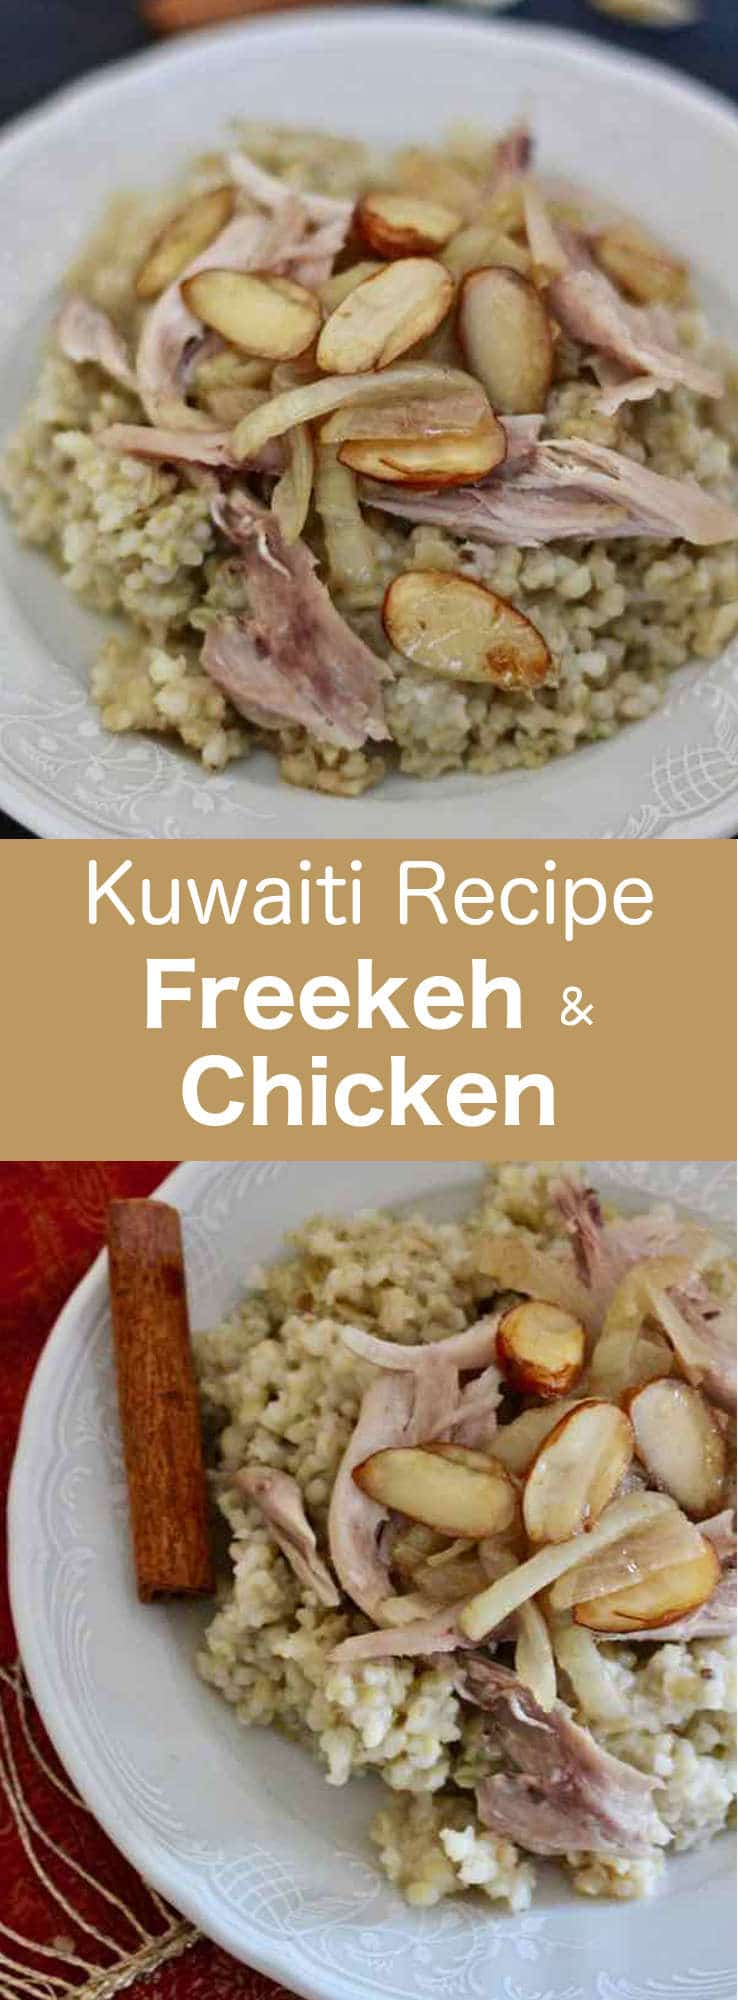 Freekeh with chicken is a traditional recipe common throughout the Middle East and particularly in Kuwait. #Kuwait #MiddleEast #196flavors